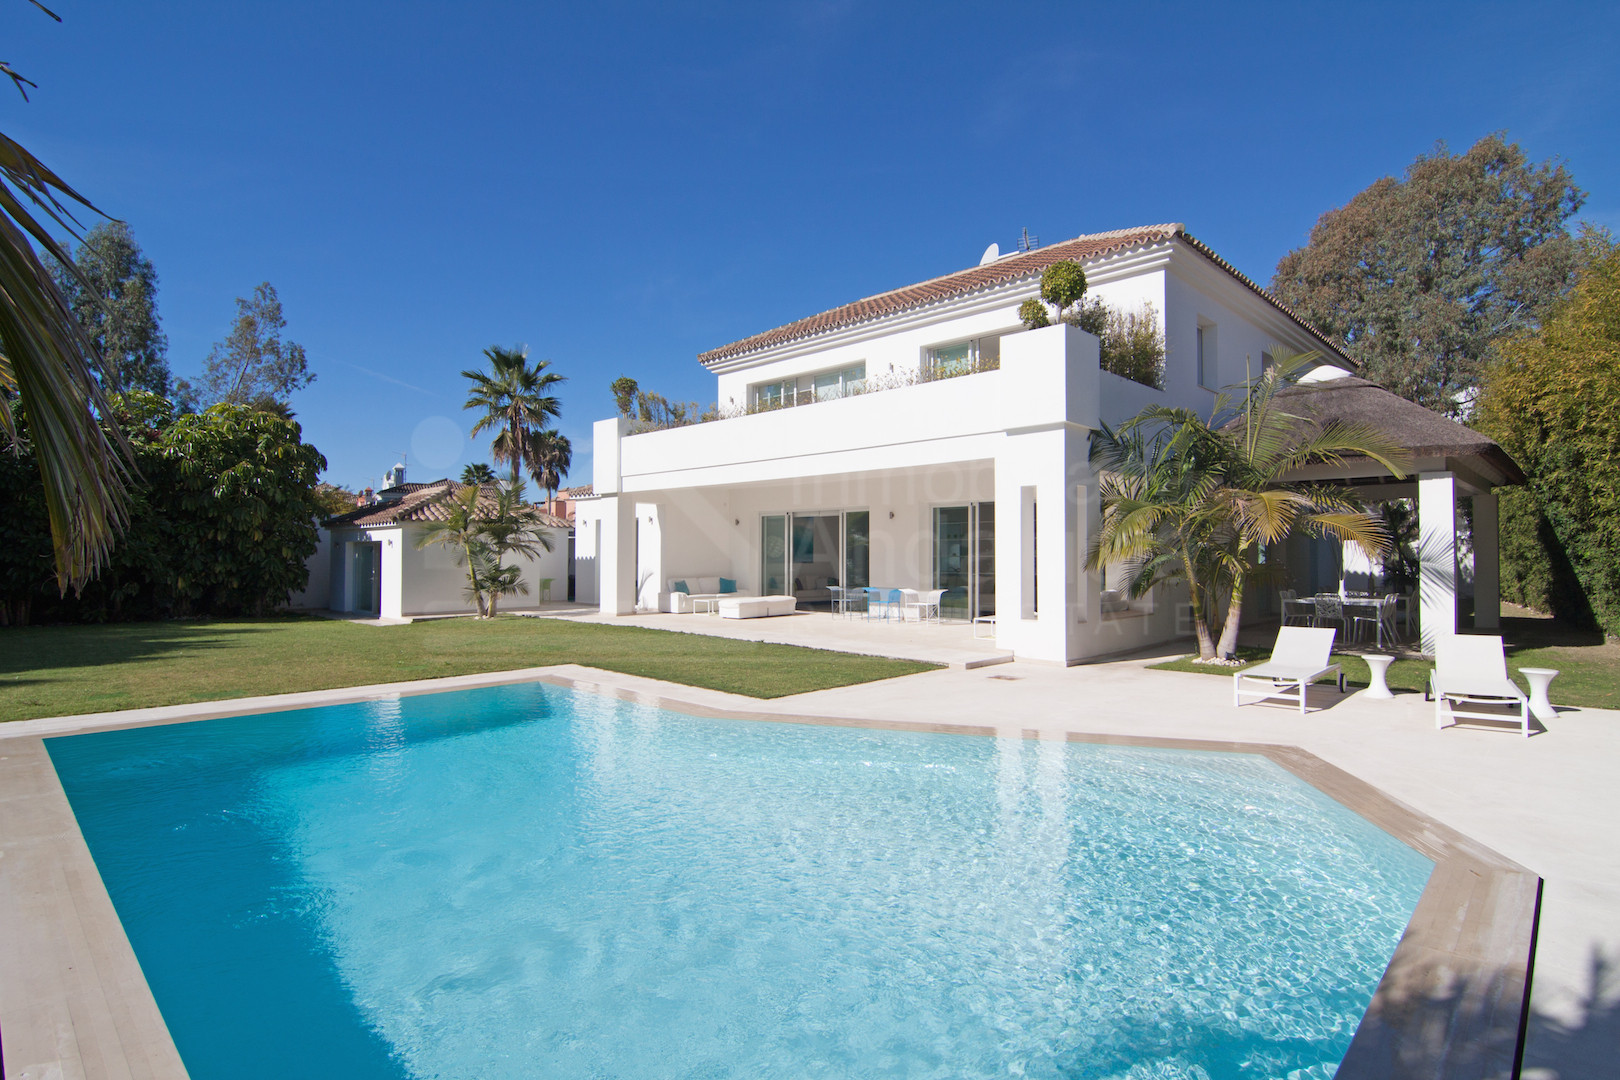 5 bedroom villa renovated to high modern standard for sale in Casasola Estepona